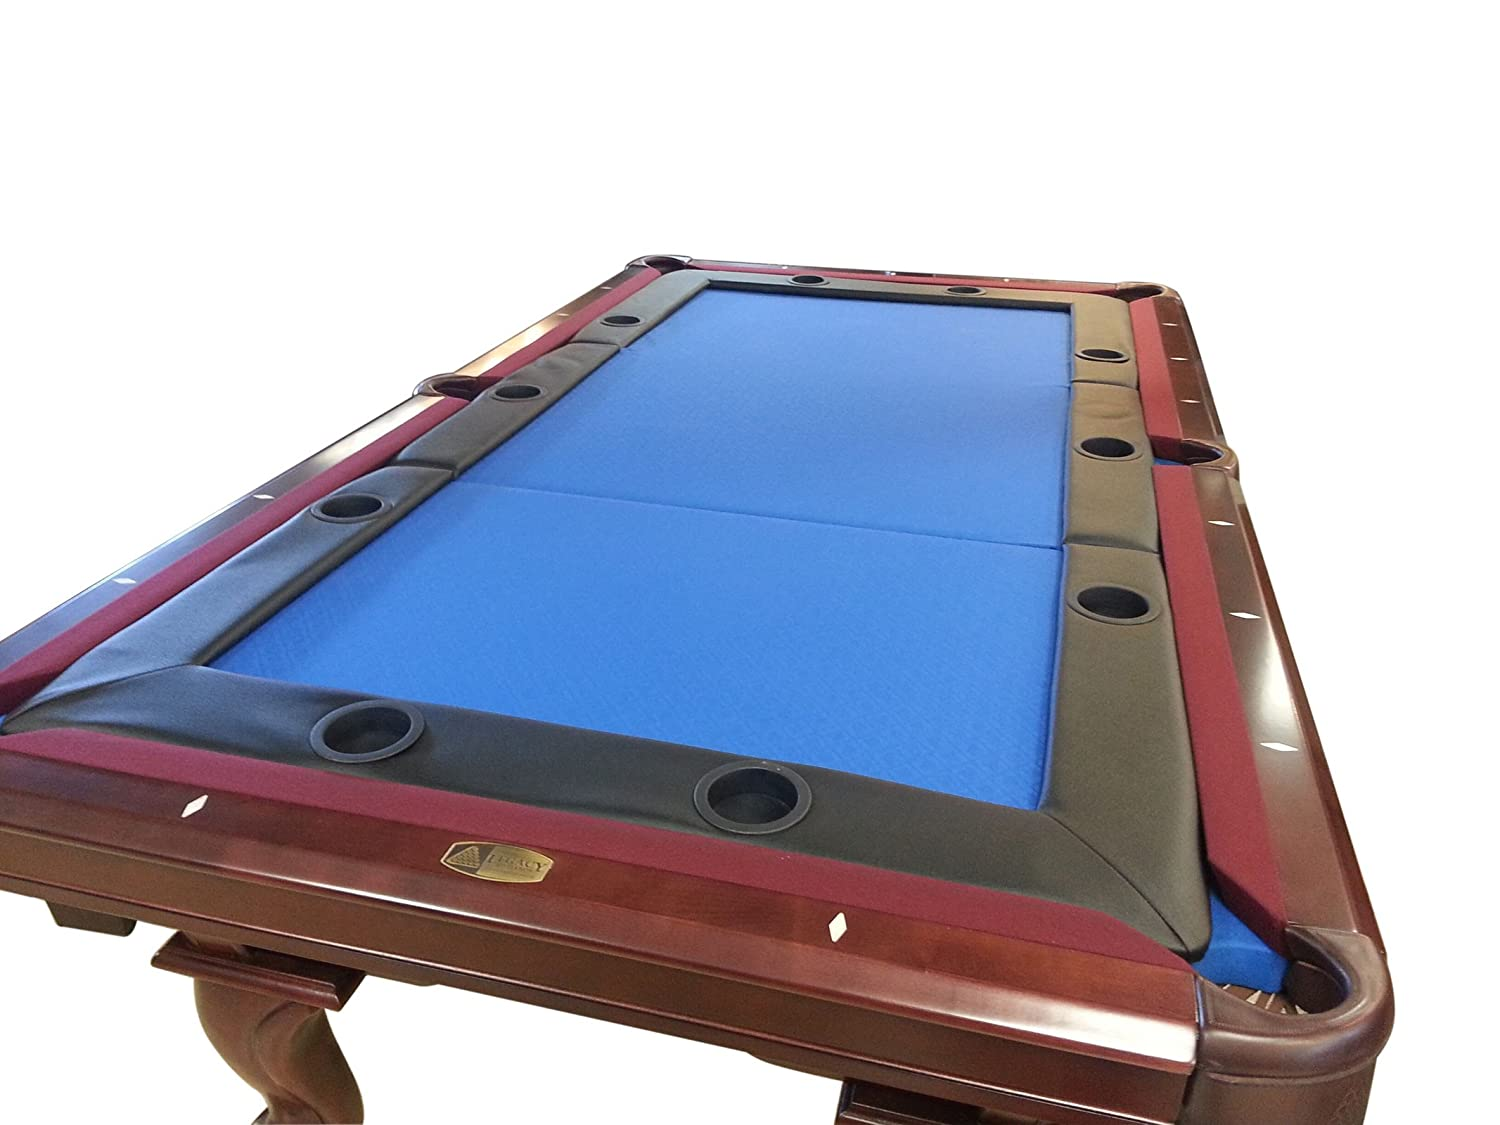 blue use pro play mdf in with table games tables american the pool store bed liberty home cloth deluxe billiard strikeworth